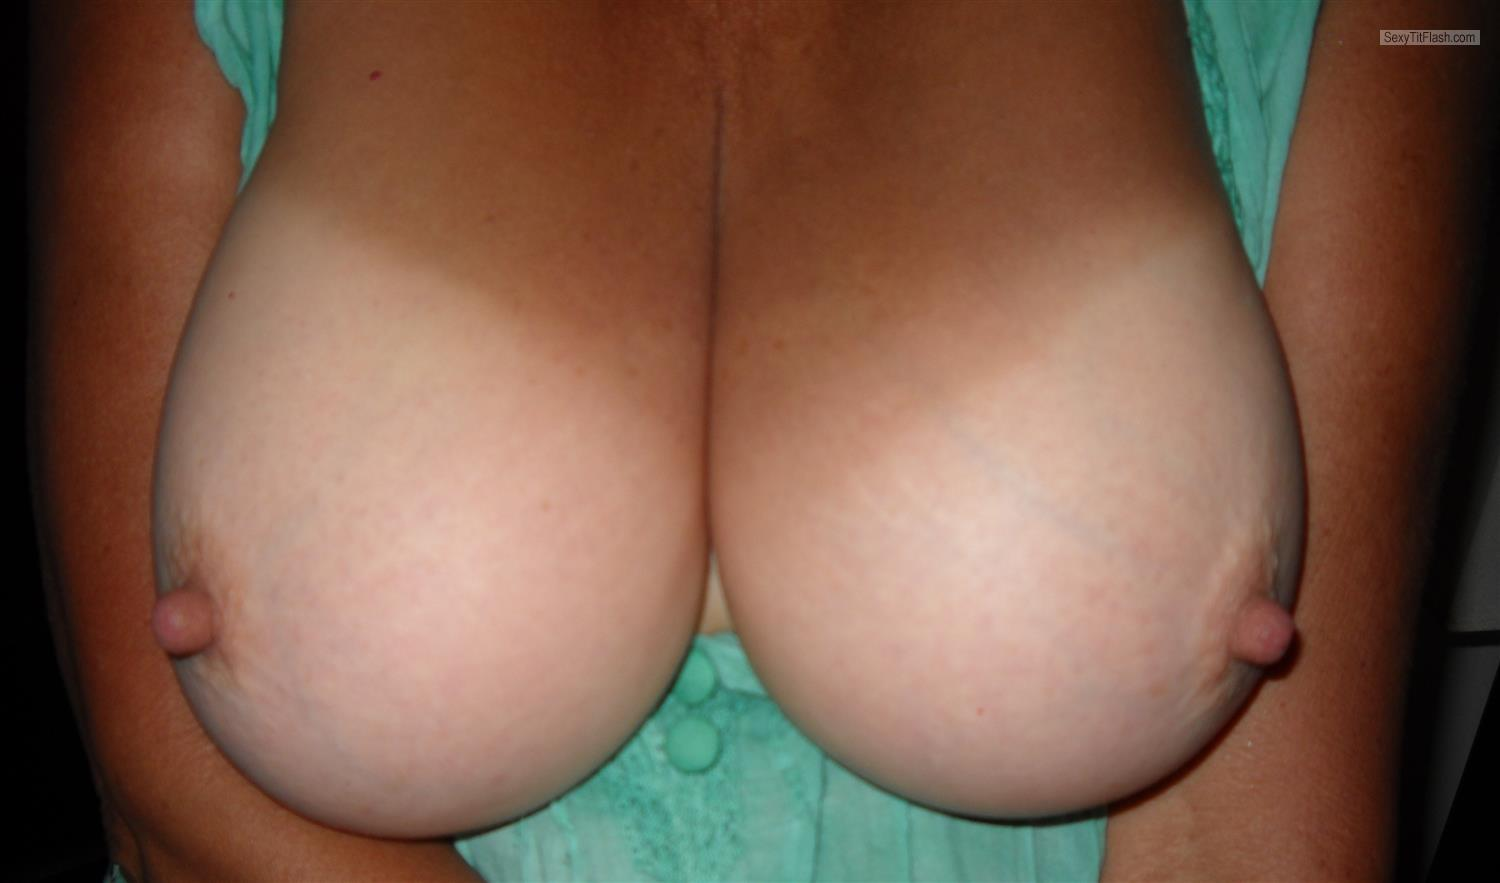 Big tits white tanlines images 202